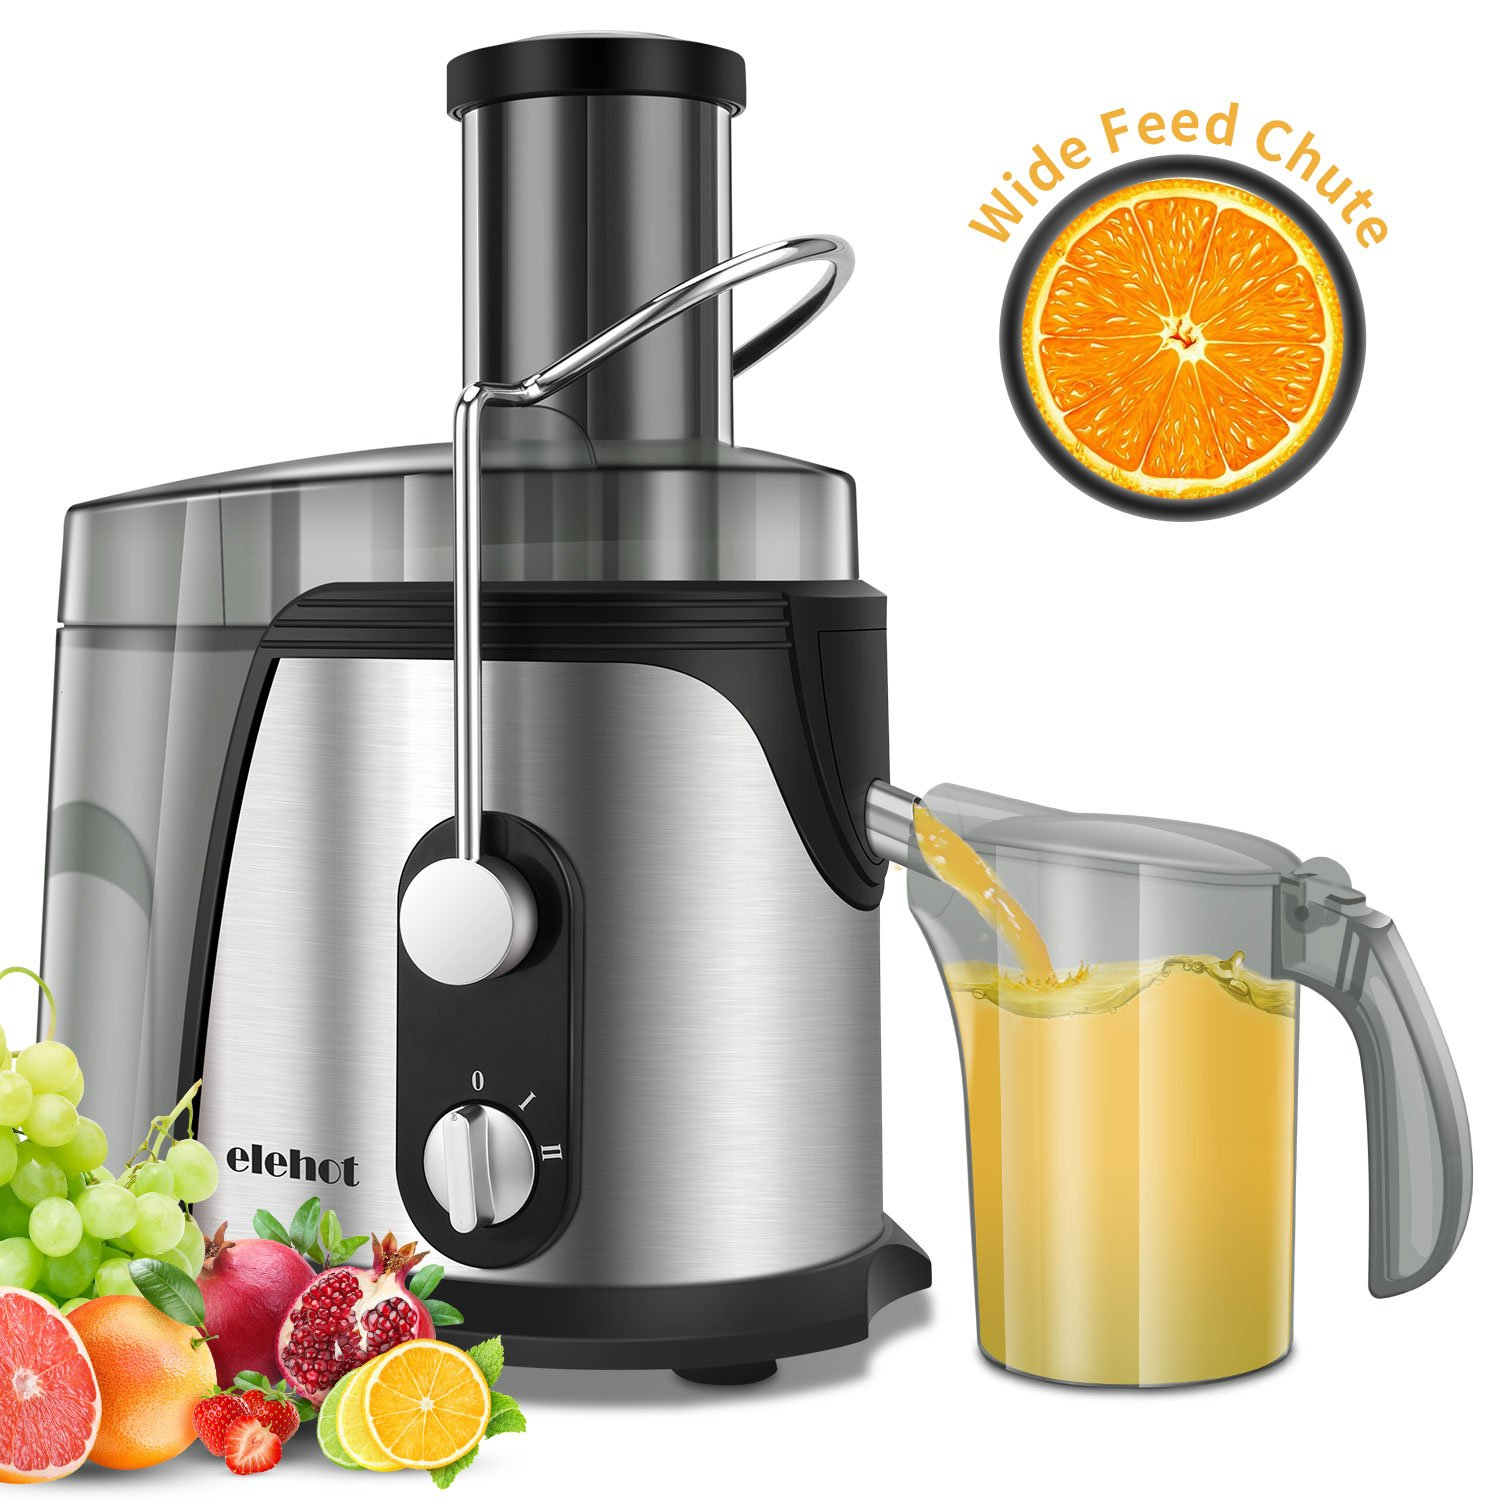 ELEHOT Juicer Juice Extractor 700 Watt Wide Mouth Stainless Steel Dual Speed Centrifugal Juicer for Fruits & Vegetable